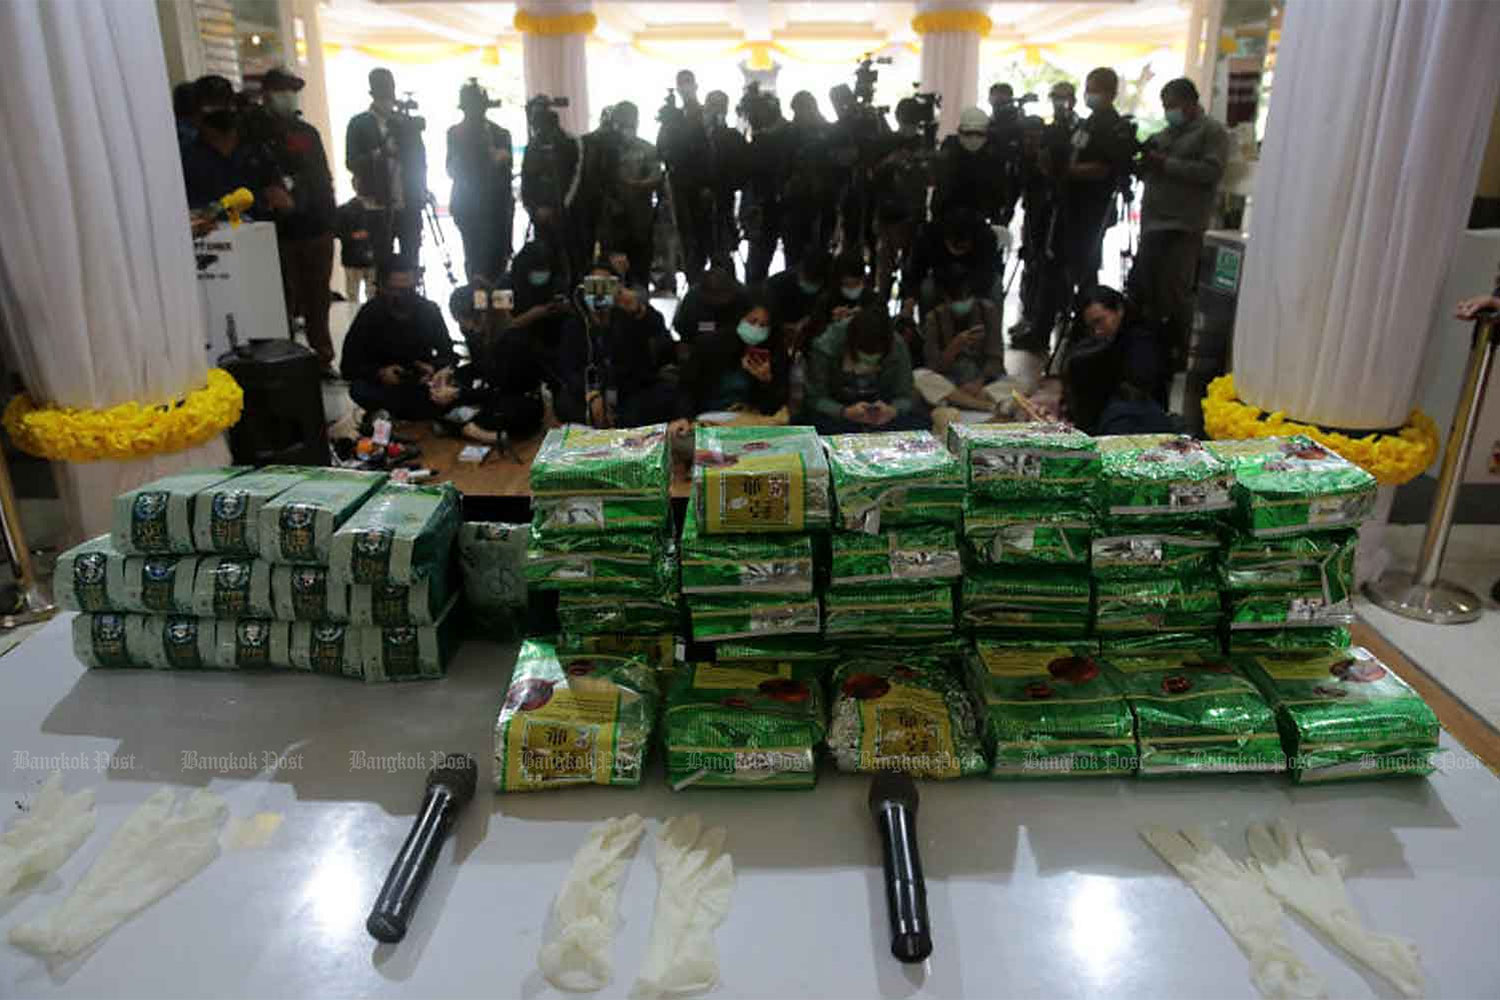 Reporters wait for a press briefing on the seizure of 30kg of crystal methamphetamine and 15kg of ketamine at the Metropolitan Police Bureau. The drugs originated in the North and were seized in Kamphaeng Phet, leading to the arrest of four people. (Photo by Chanat Katanyu)